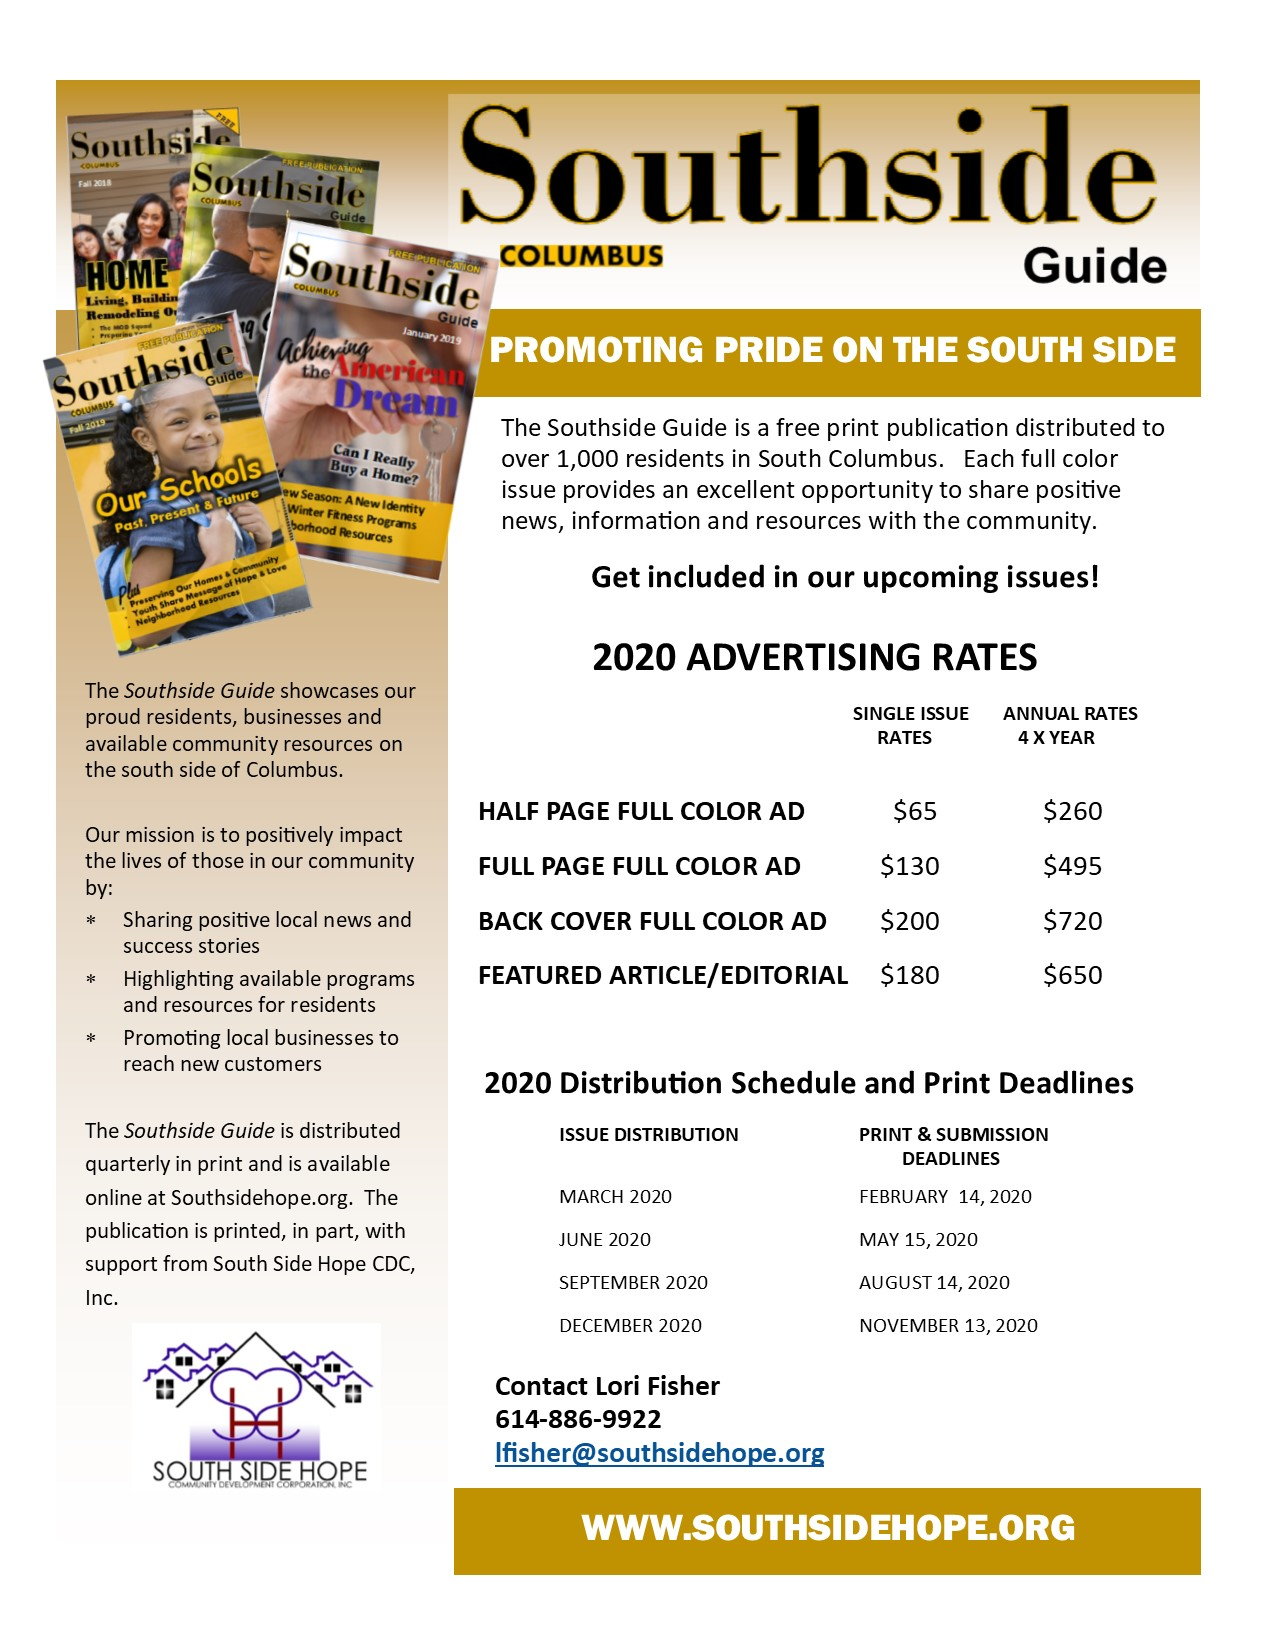 Southside Guide Advertising Rates 2020